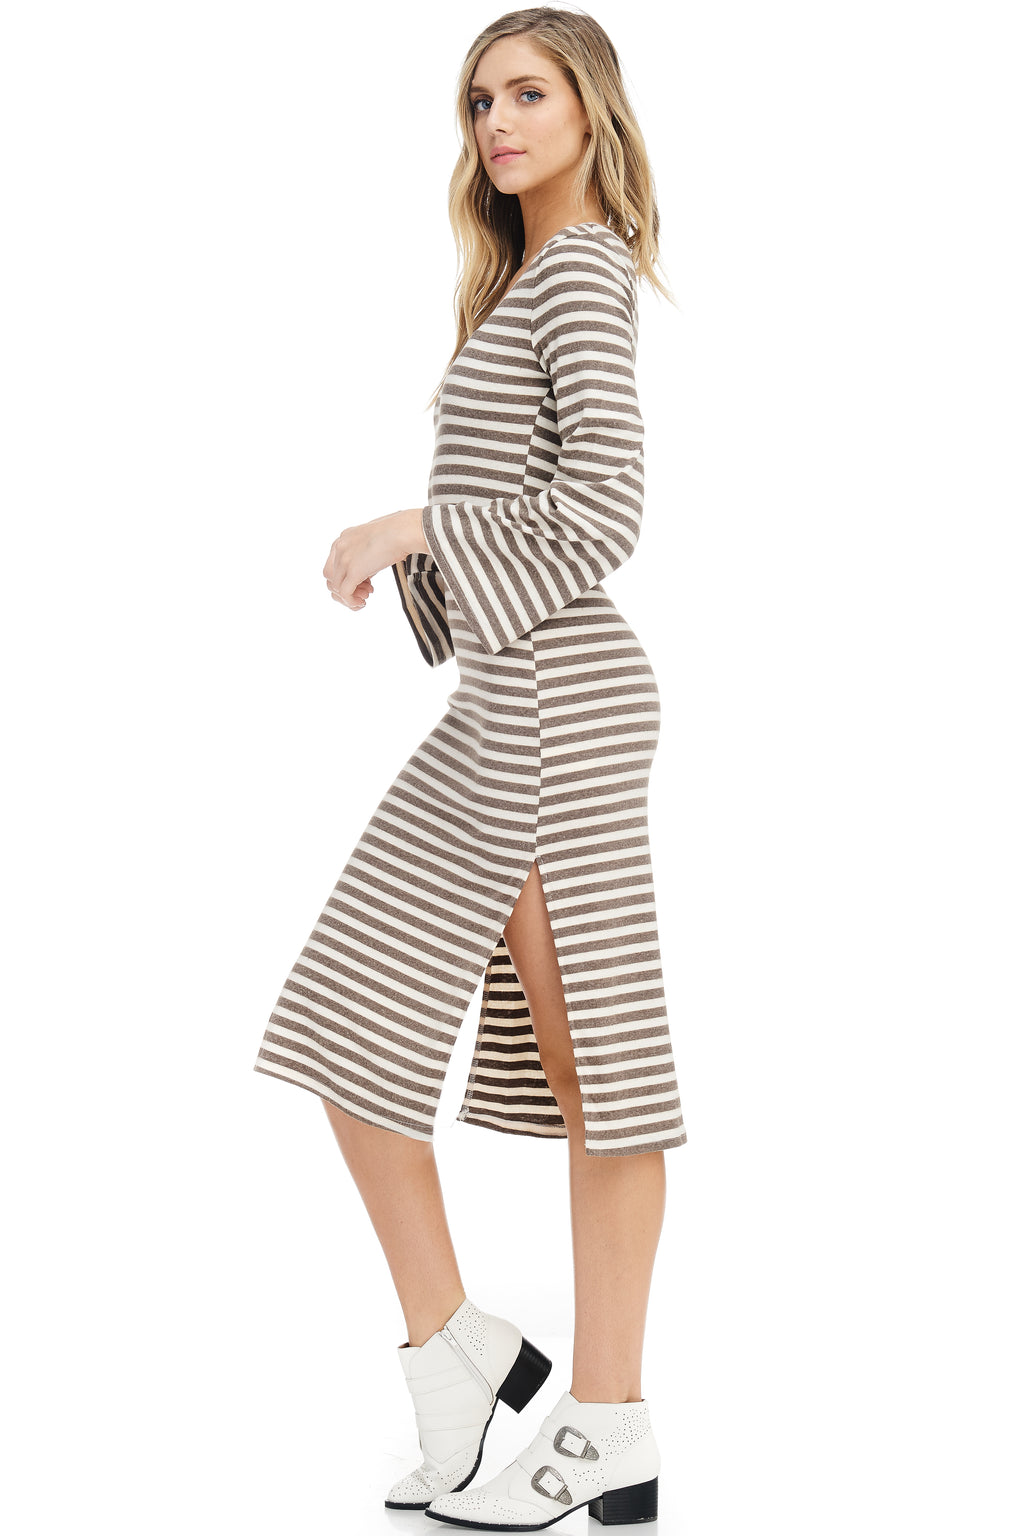 *Pre-Order* W18-057 Striped Bell Sleeve Dress